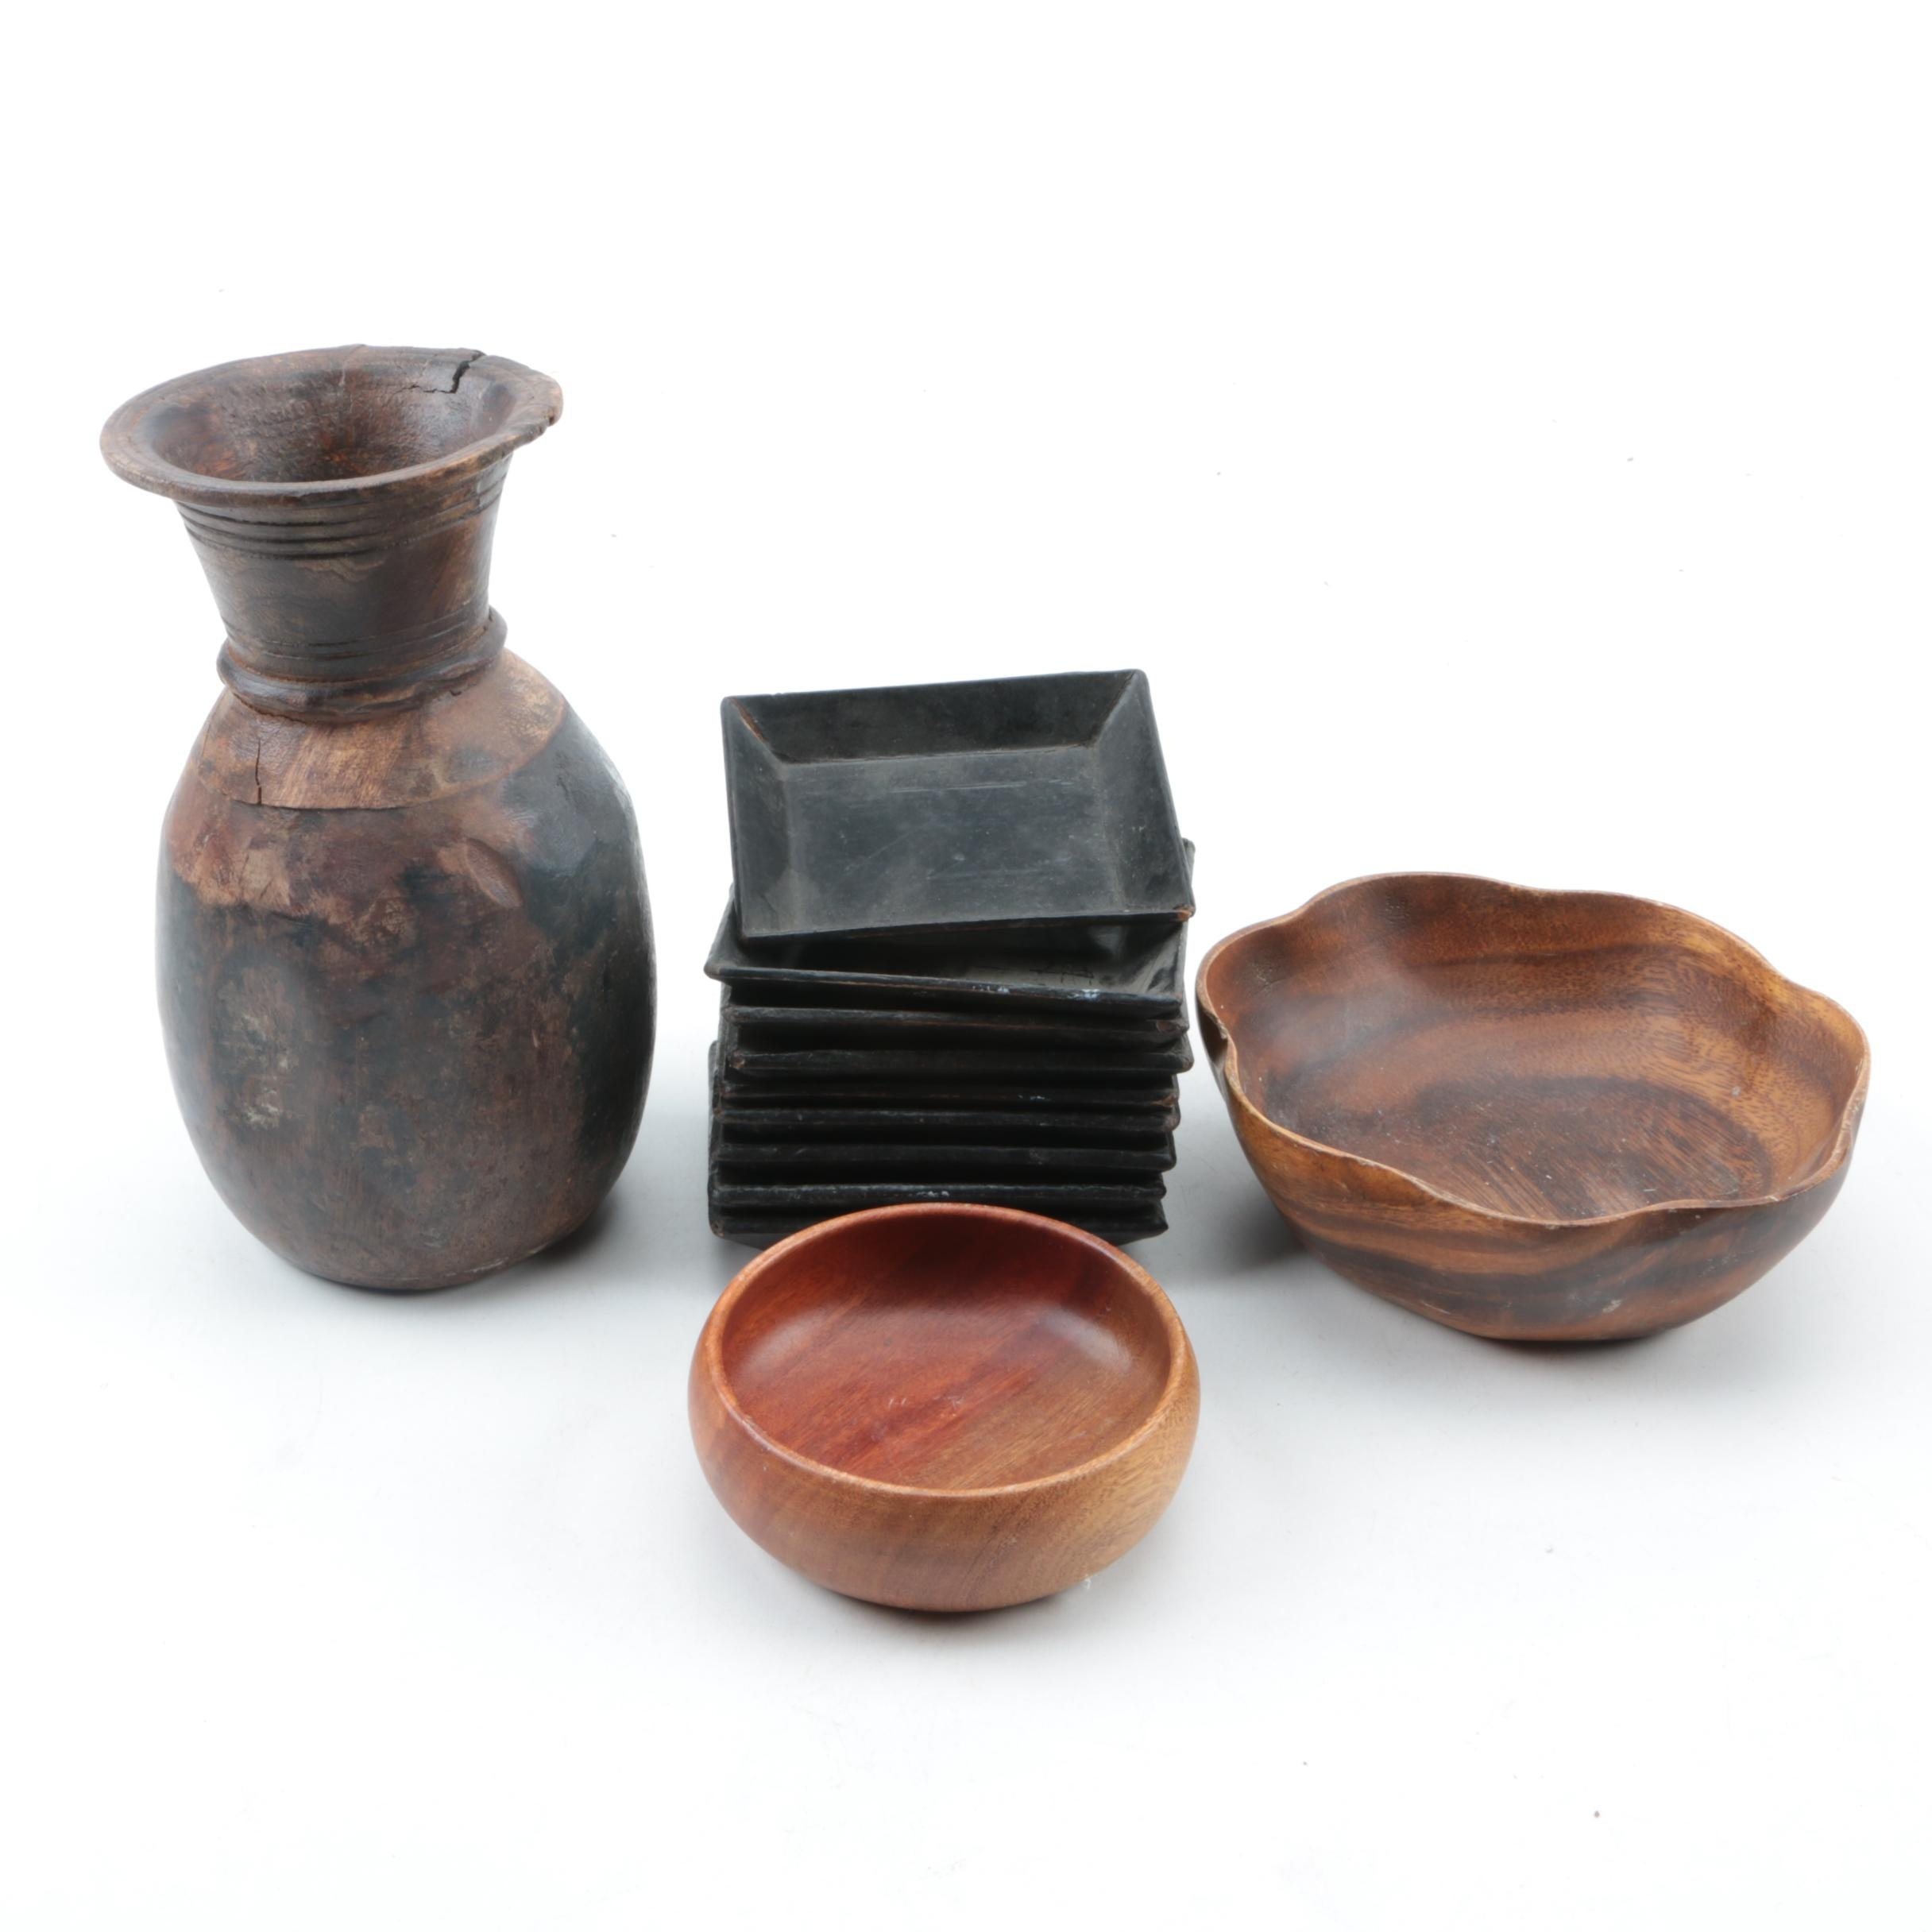 Vintage Carved Wood Bowls, Vase, and Lacquered Trays